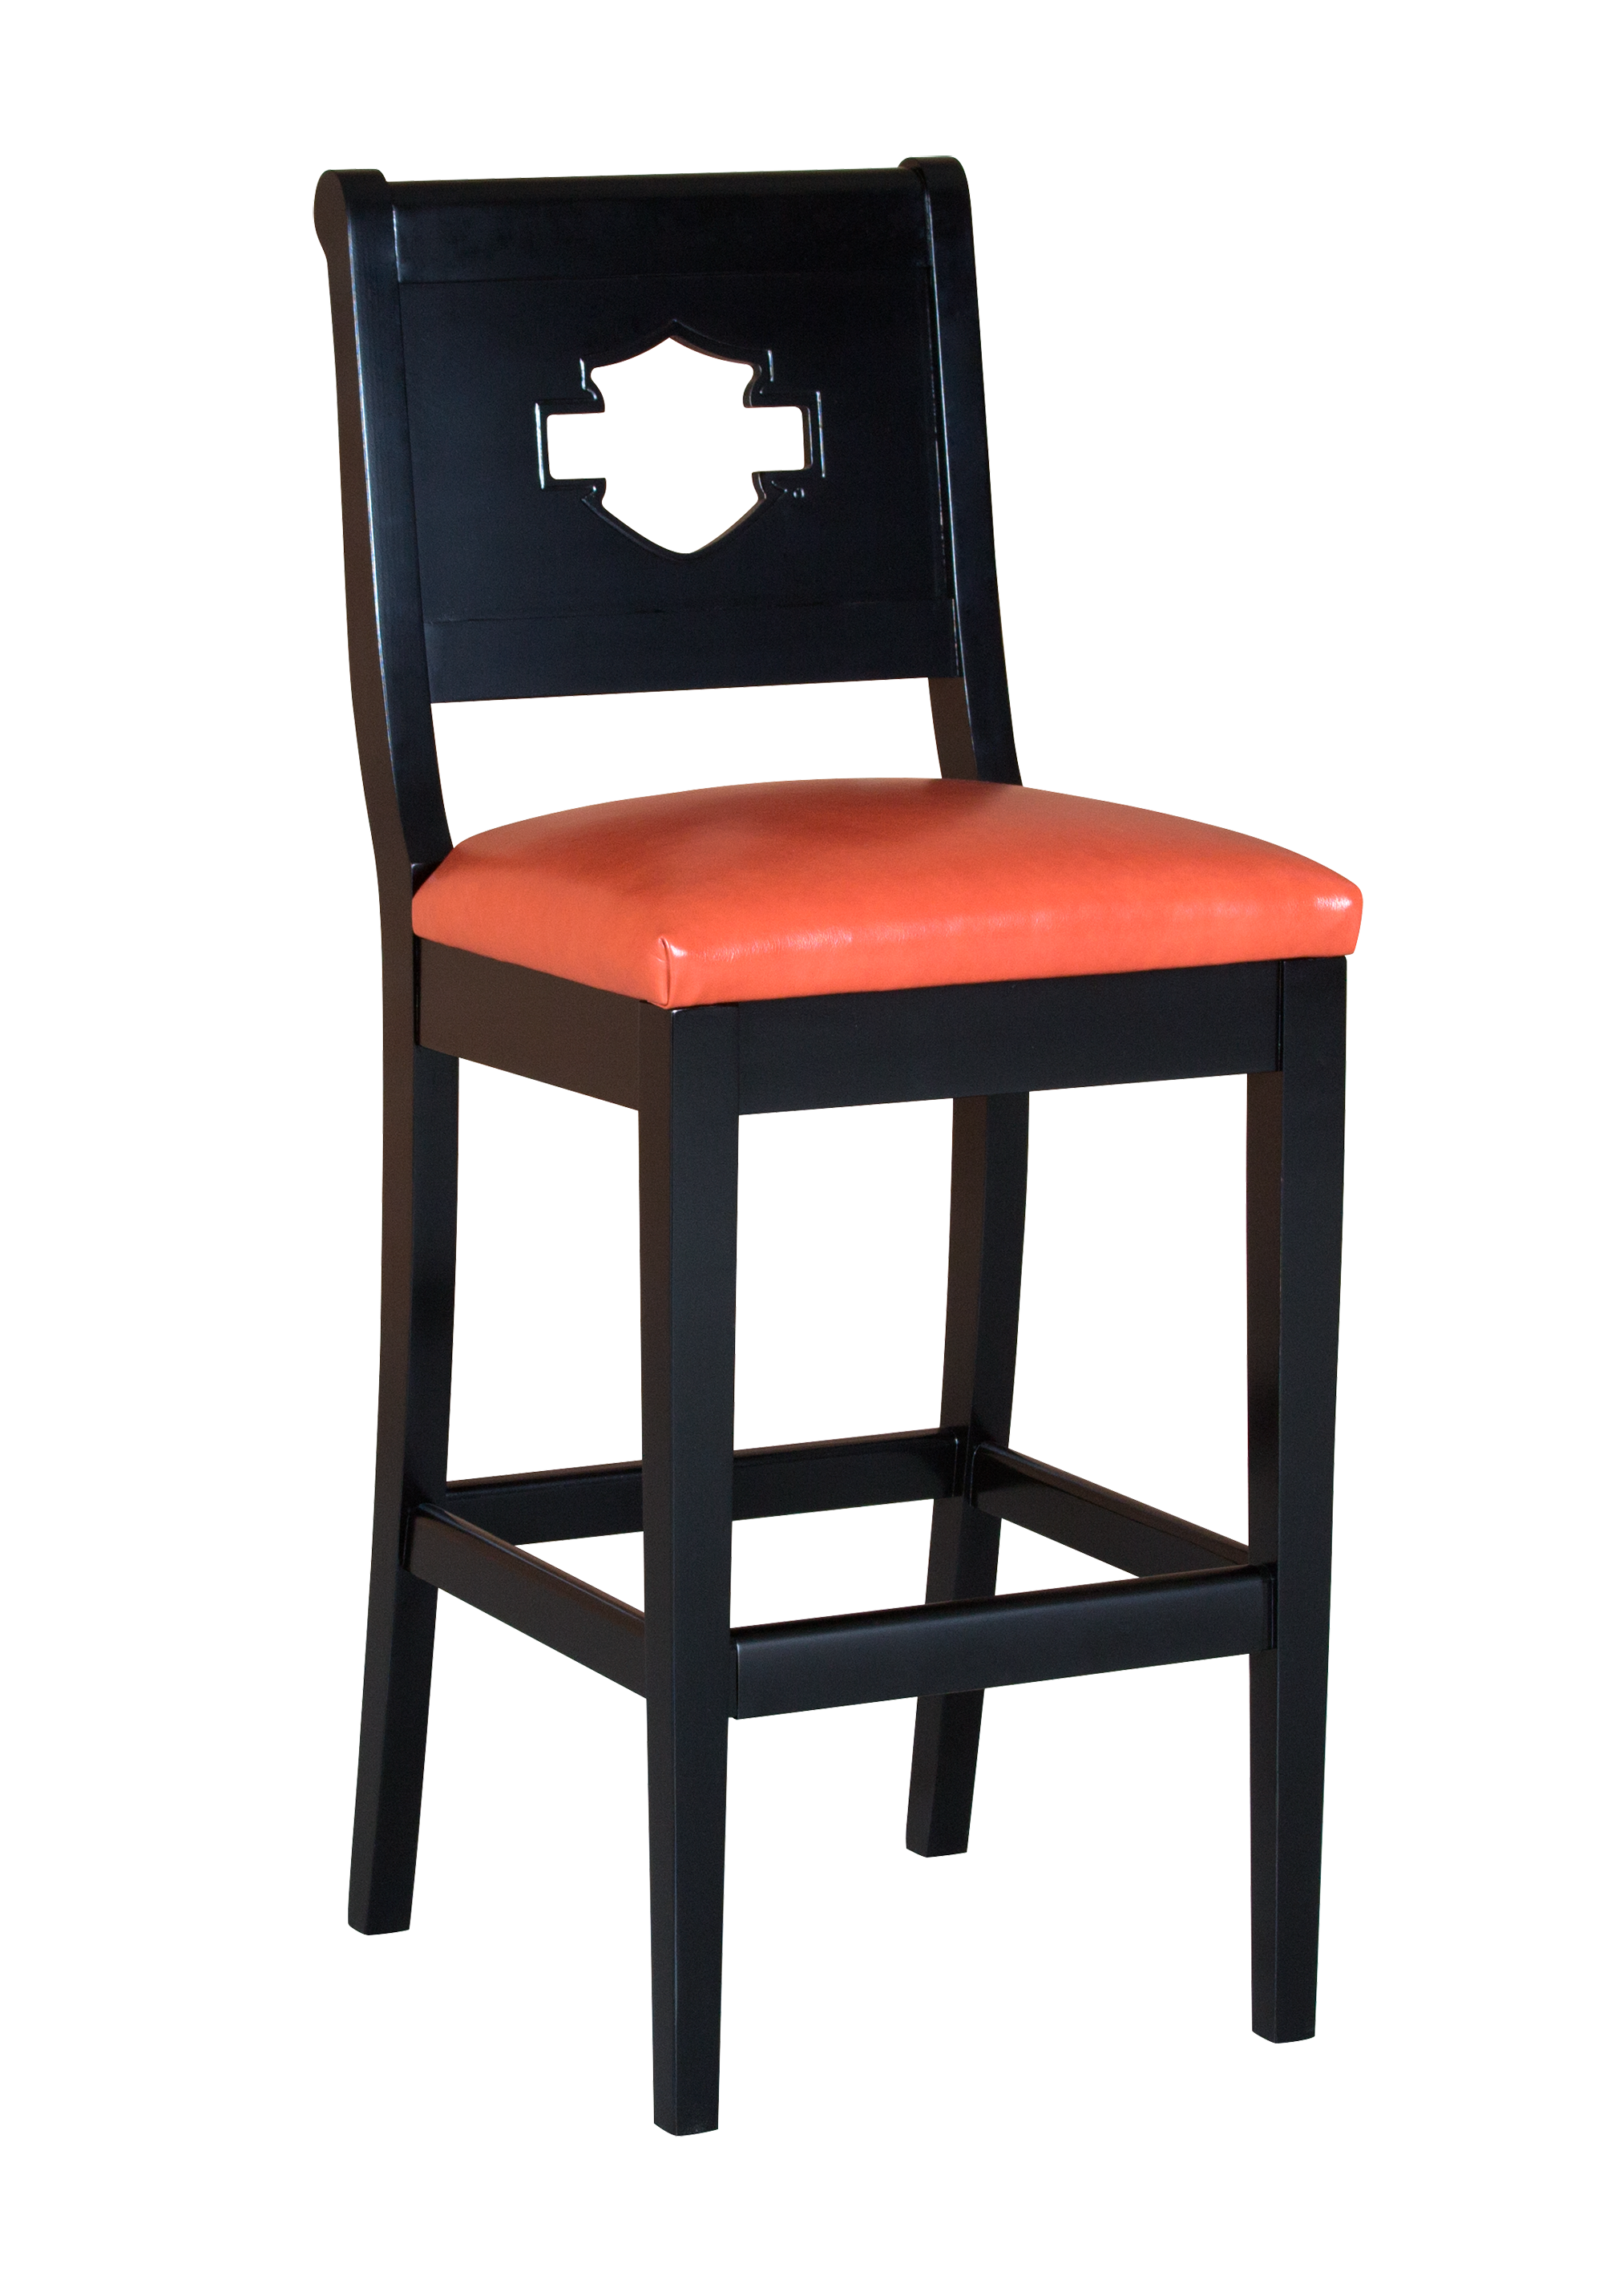 Pleasant Hd 6191Abs Harley Davidson Furniture By Classic Leather Caraccident5 Cool Chair Designs And Ideas Caraccident5Info